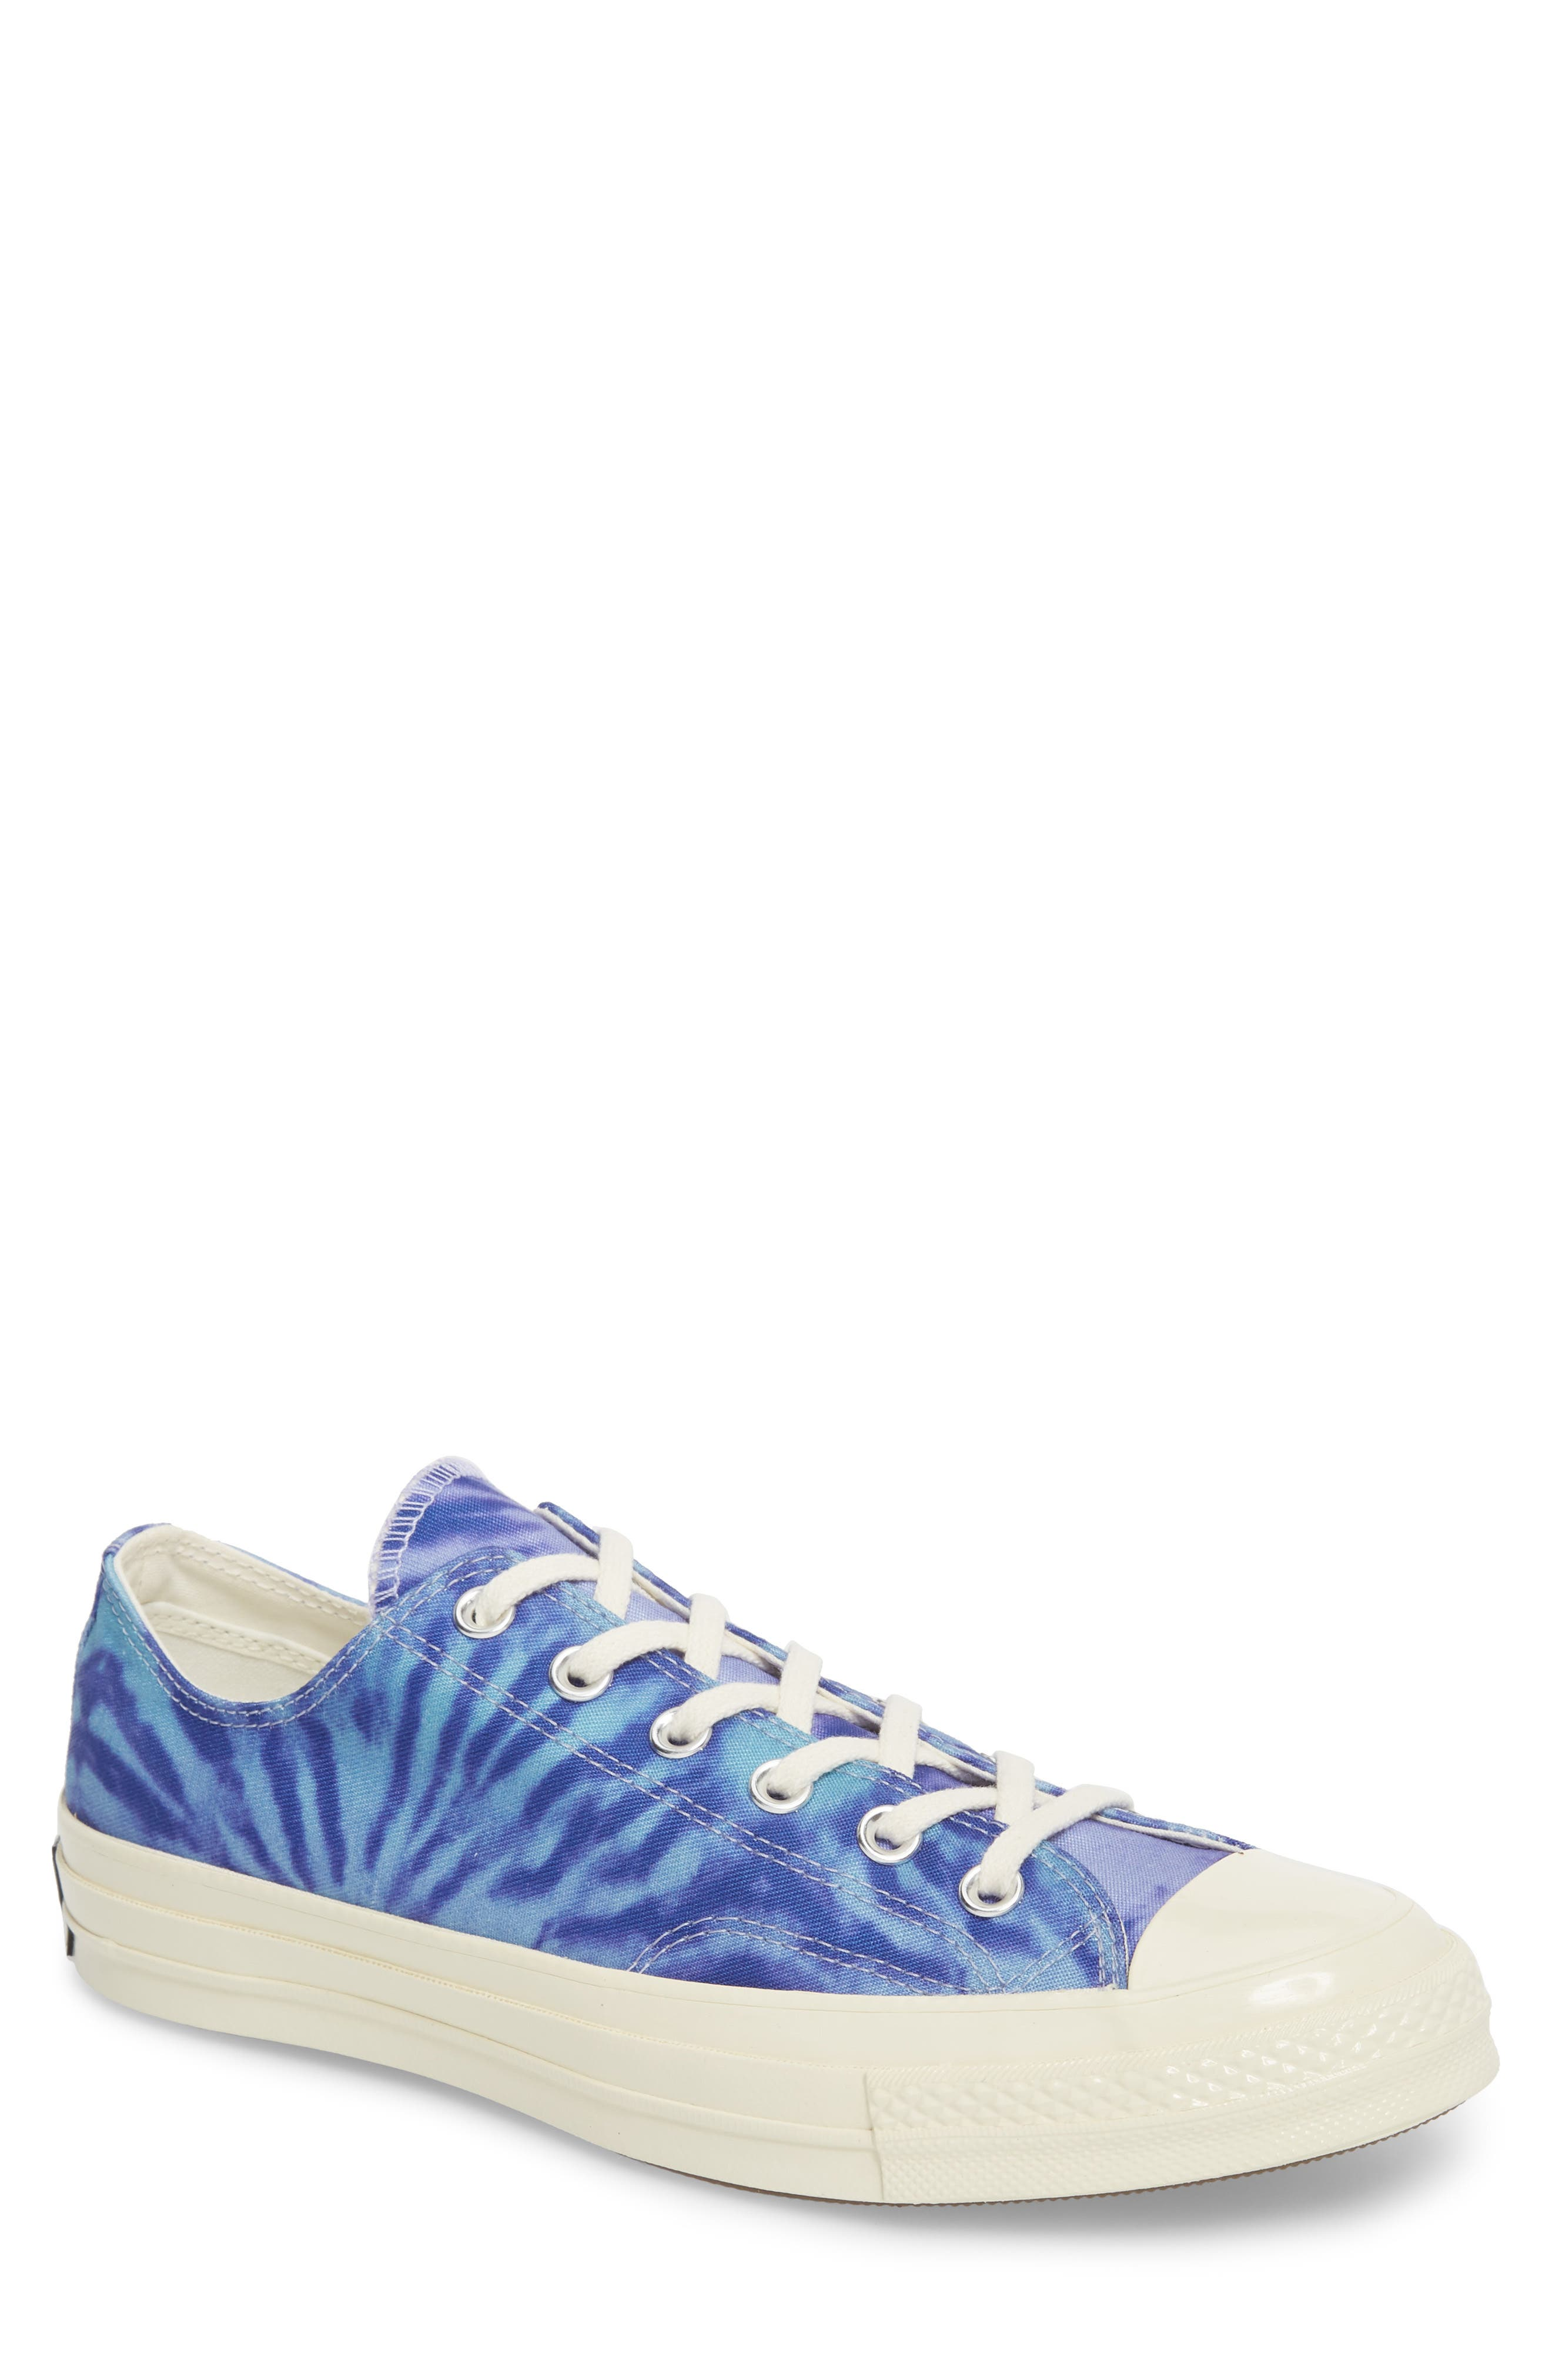 Chuck Taylor<sup>®</sup> All Star<sup>®</sup> 70 Tie Dye Low Top Sneaker,                         Main,                         color, Shoreline Blue